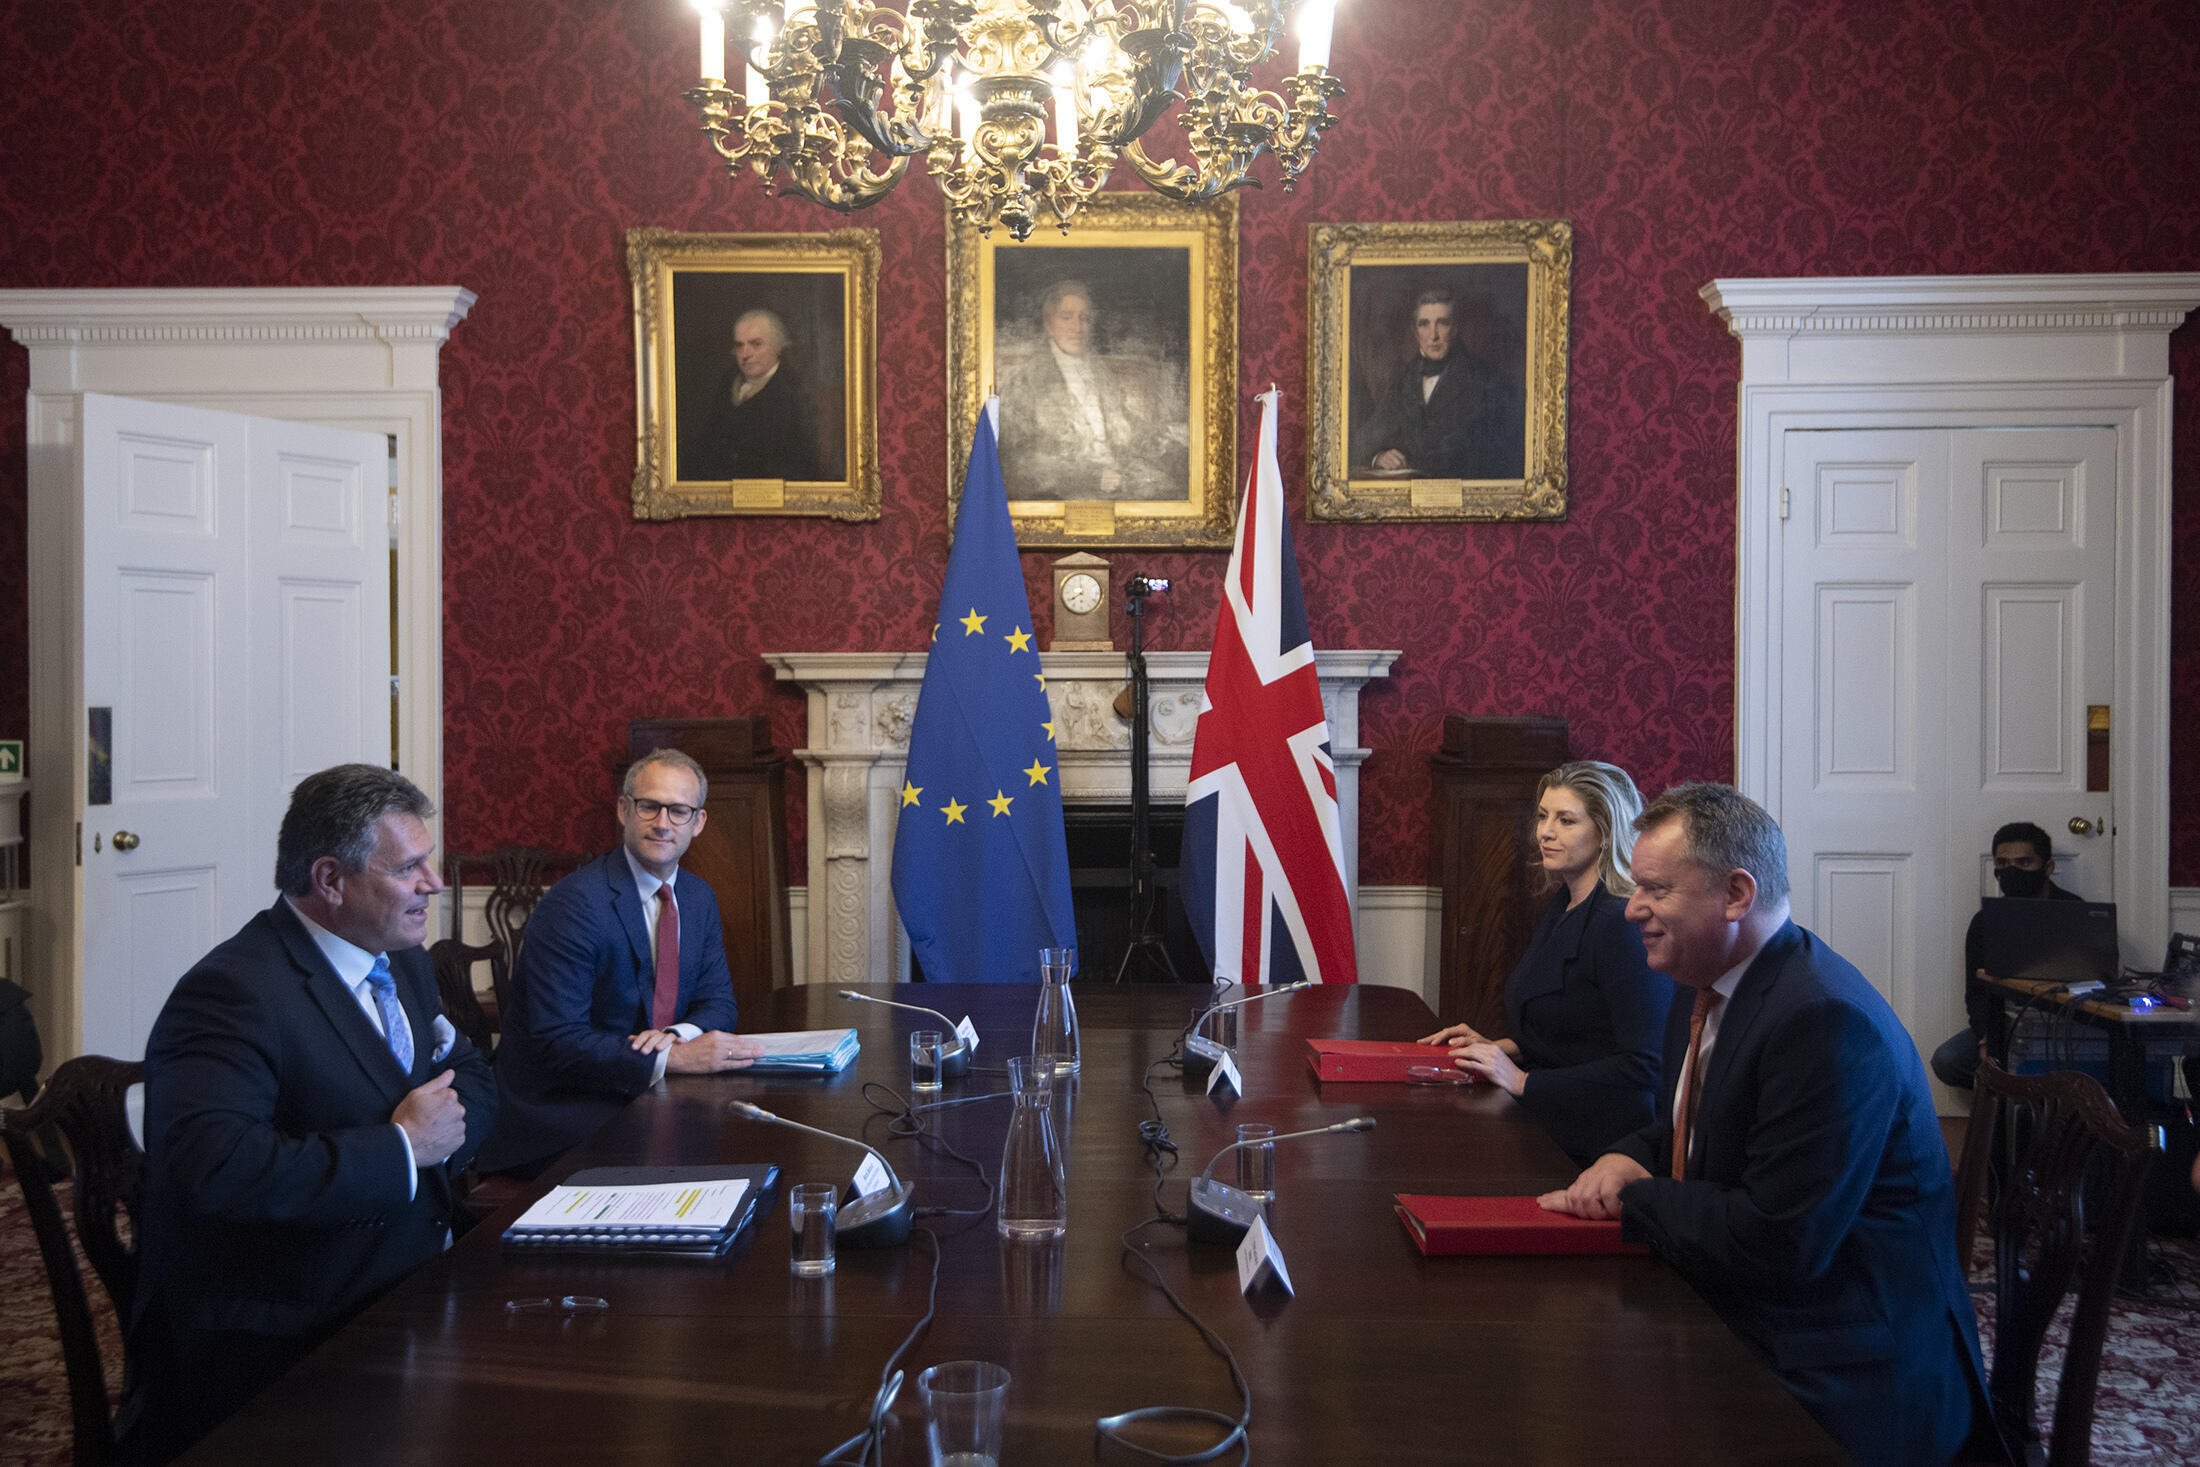 royaume-uni-union-europeenne-frost-sefcovic-brexit-irlande-du-nord